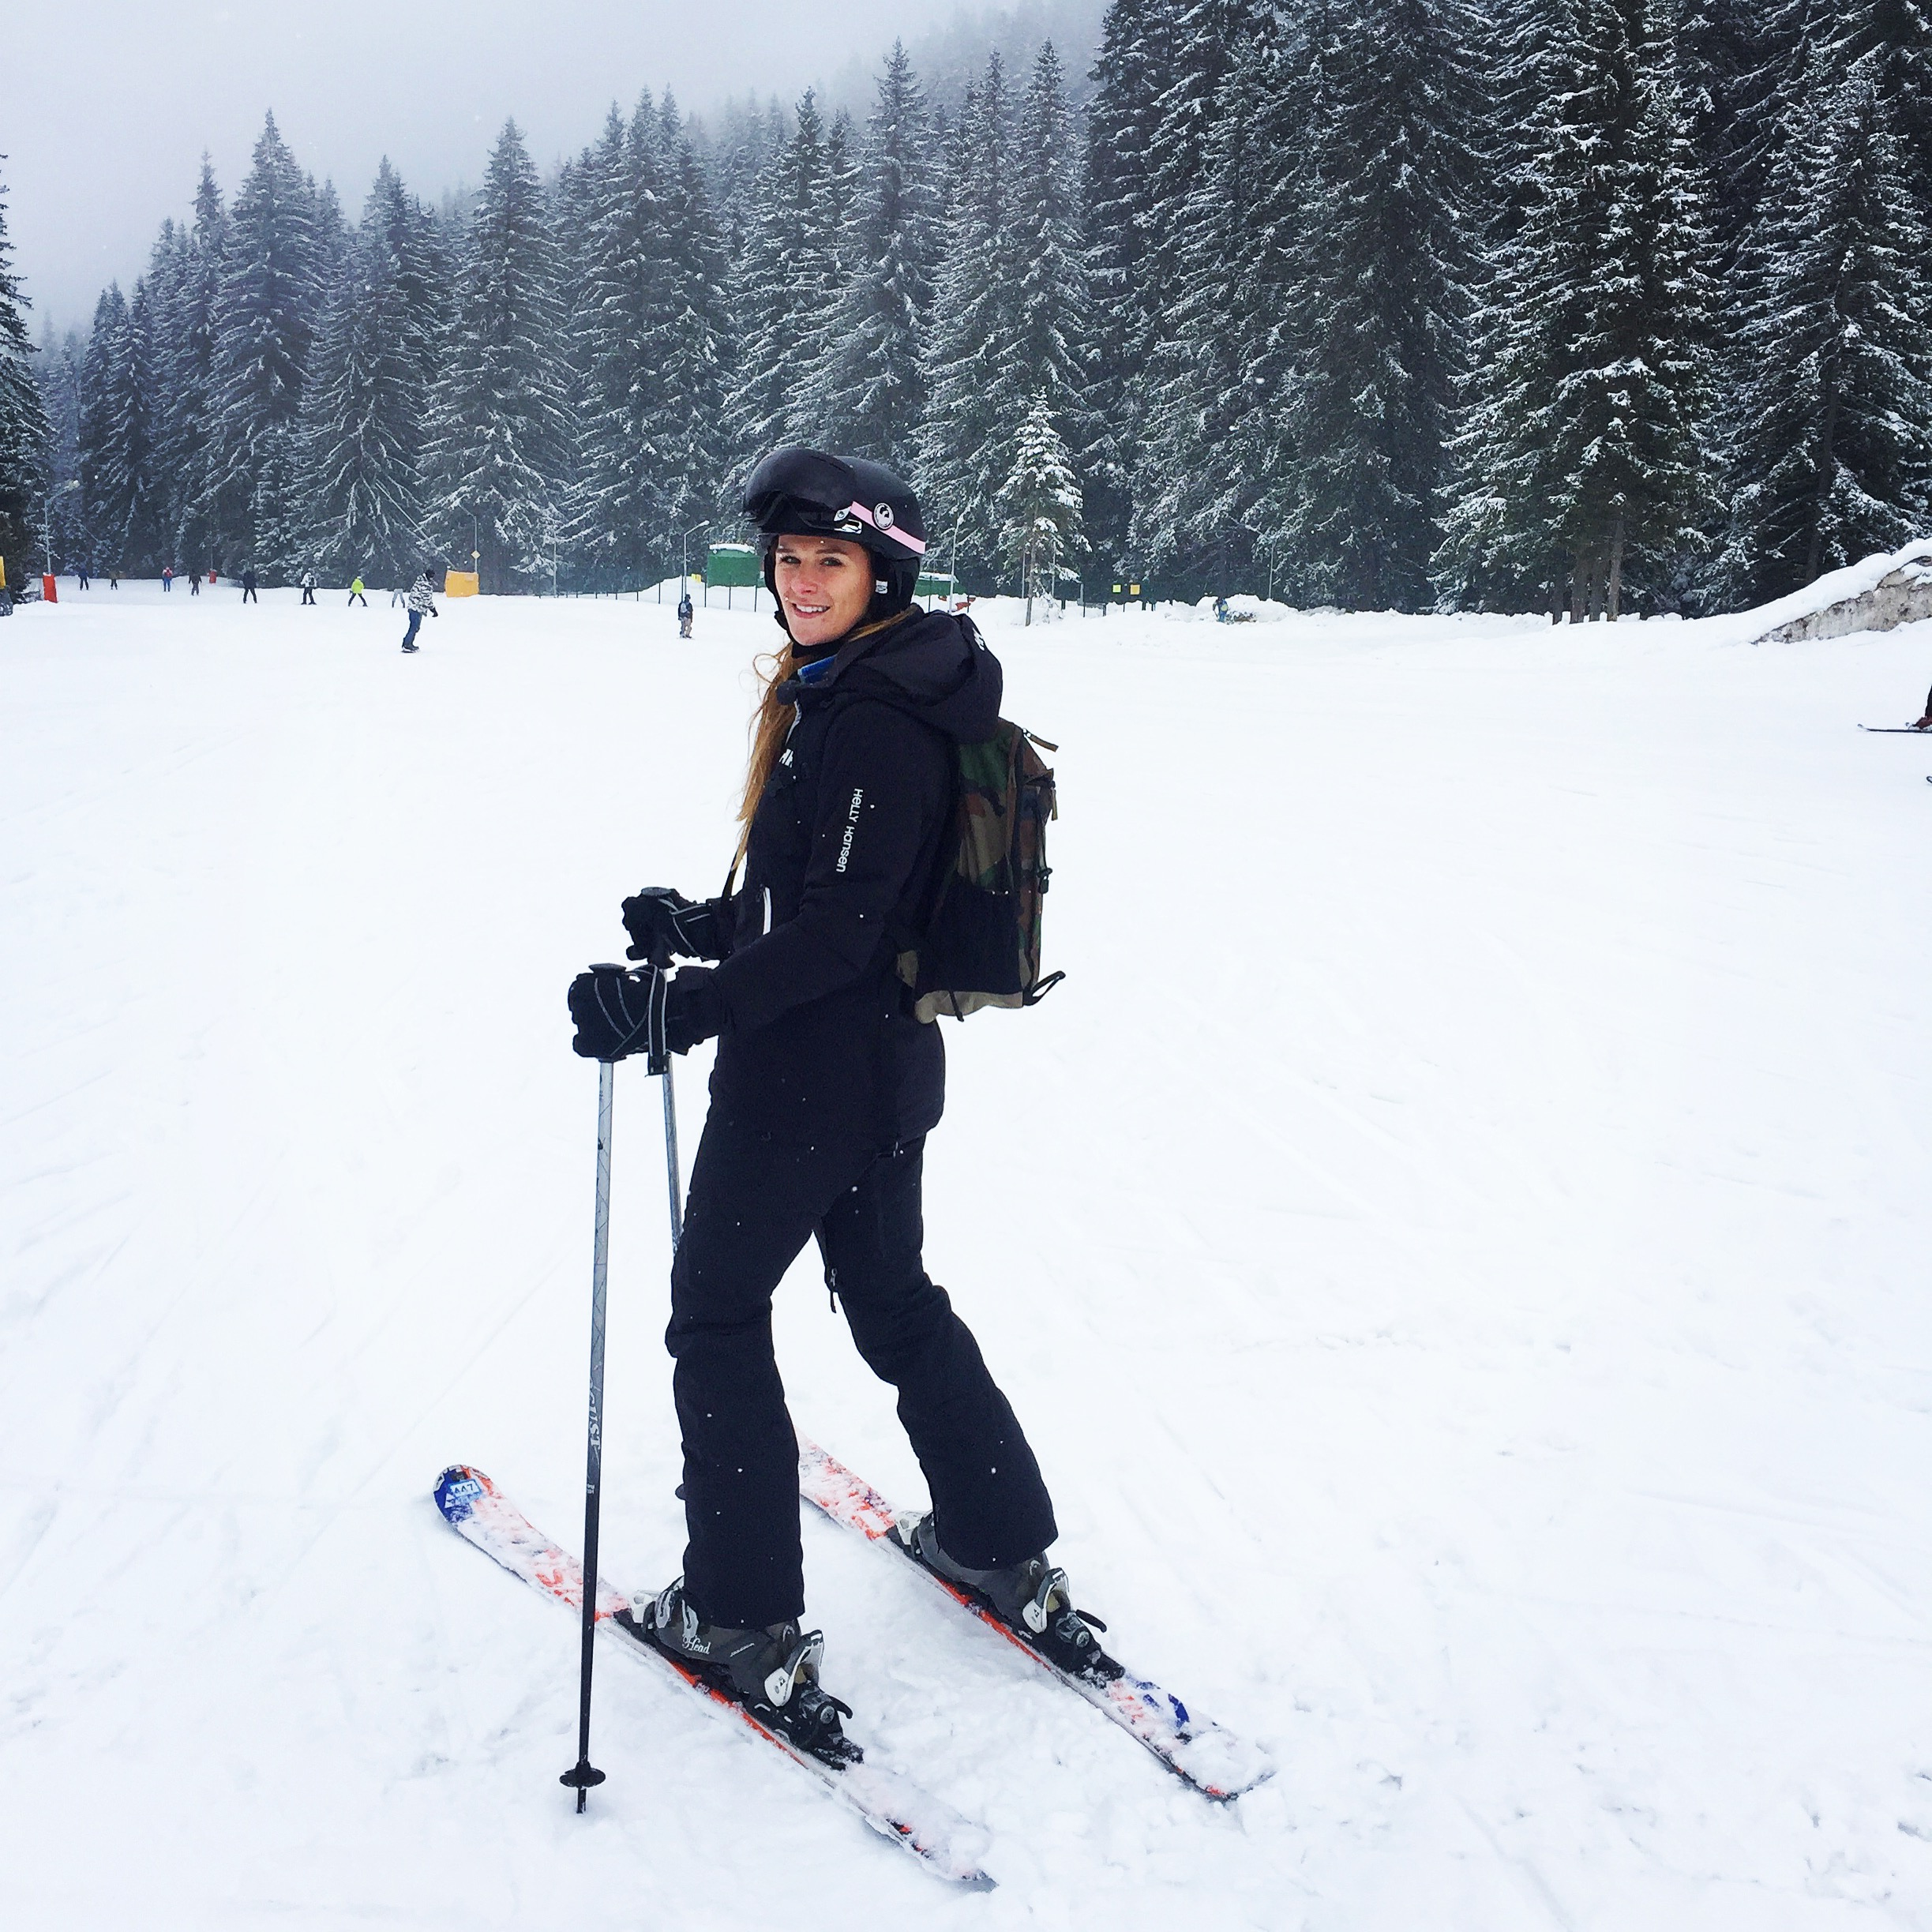 Getting more confident on the skis